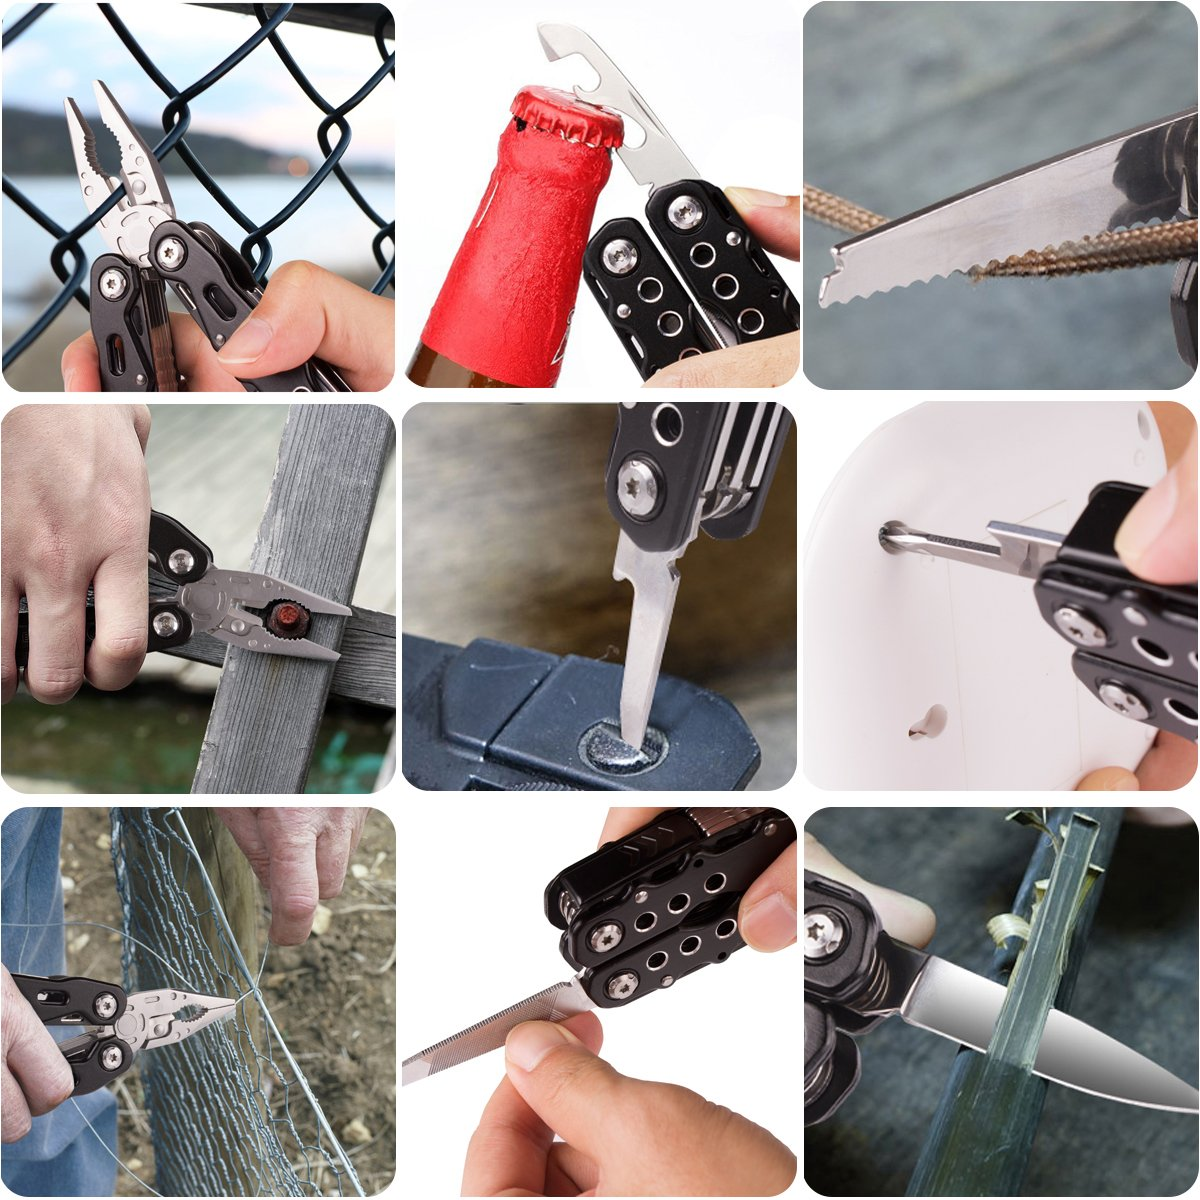 Morpilot Multitool, 25 in 1 Multitool Pliers Stainless Steel Folding Pocket Knife Plier Kit with Durable Nylon Sheath for Survival, Camping, Hiking, Hunting, Fishing (14 in 1 Multitool)